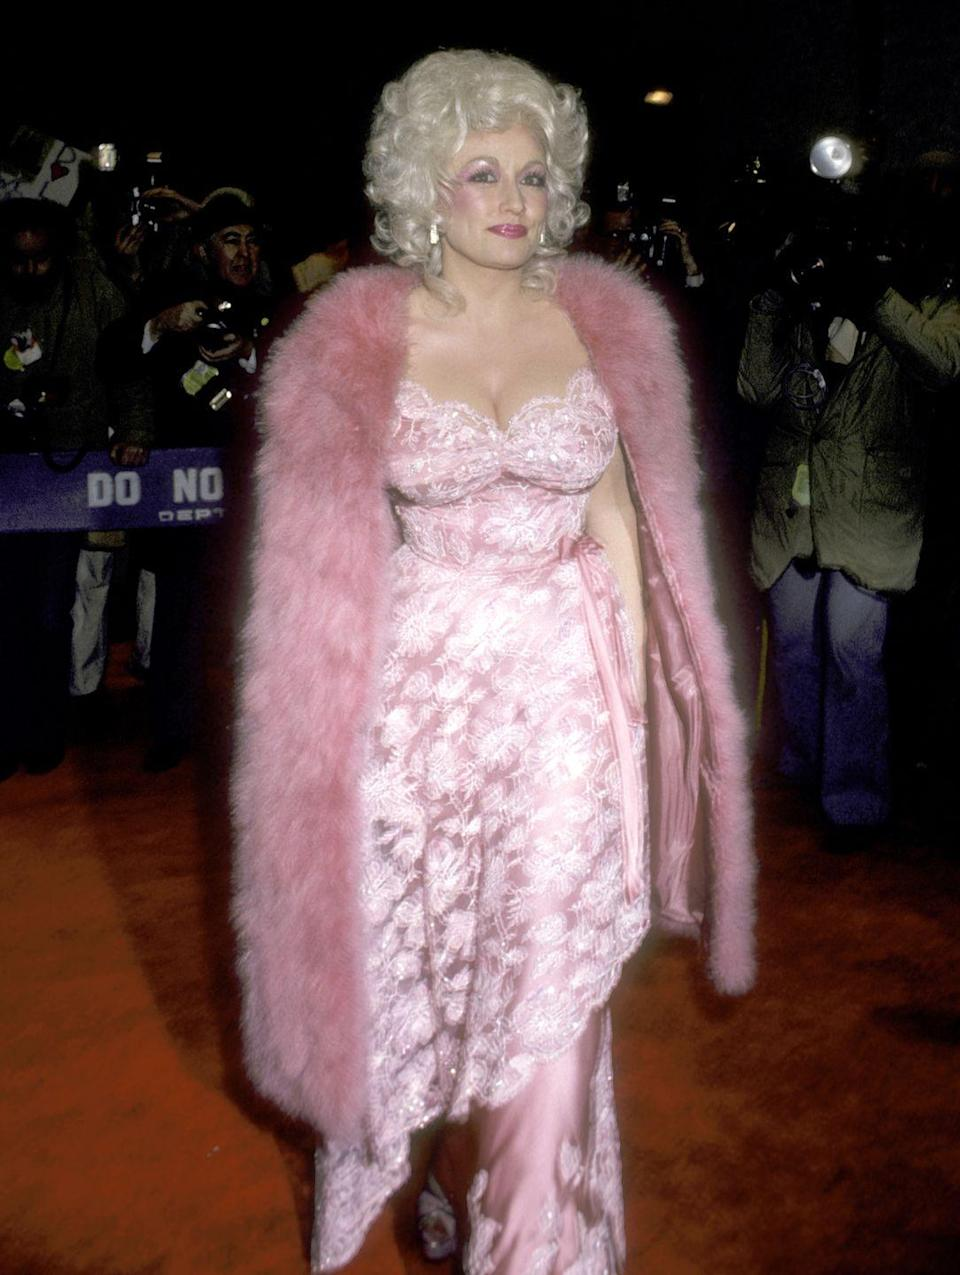 """<p>She's pretty in pink at the<a href=""""https://www.amazon.com/9-5-Jane-Fonda/dp/B005SAYWD8?tag=syn-yahoo-20&ascsubtag=%5Bartid%7C1782.g.35034126%5Bsrc%7Cyahoo-us"""" rel=""""nofollow noopener"""" target=""""_blank"""" data-ylk=""""slk:9 to 5 film premiere"""" class=""""link rapid-noclick-resp""""> <em>9 to 5 </em>film premiere </a>in New York.</p>"""